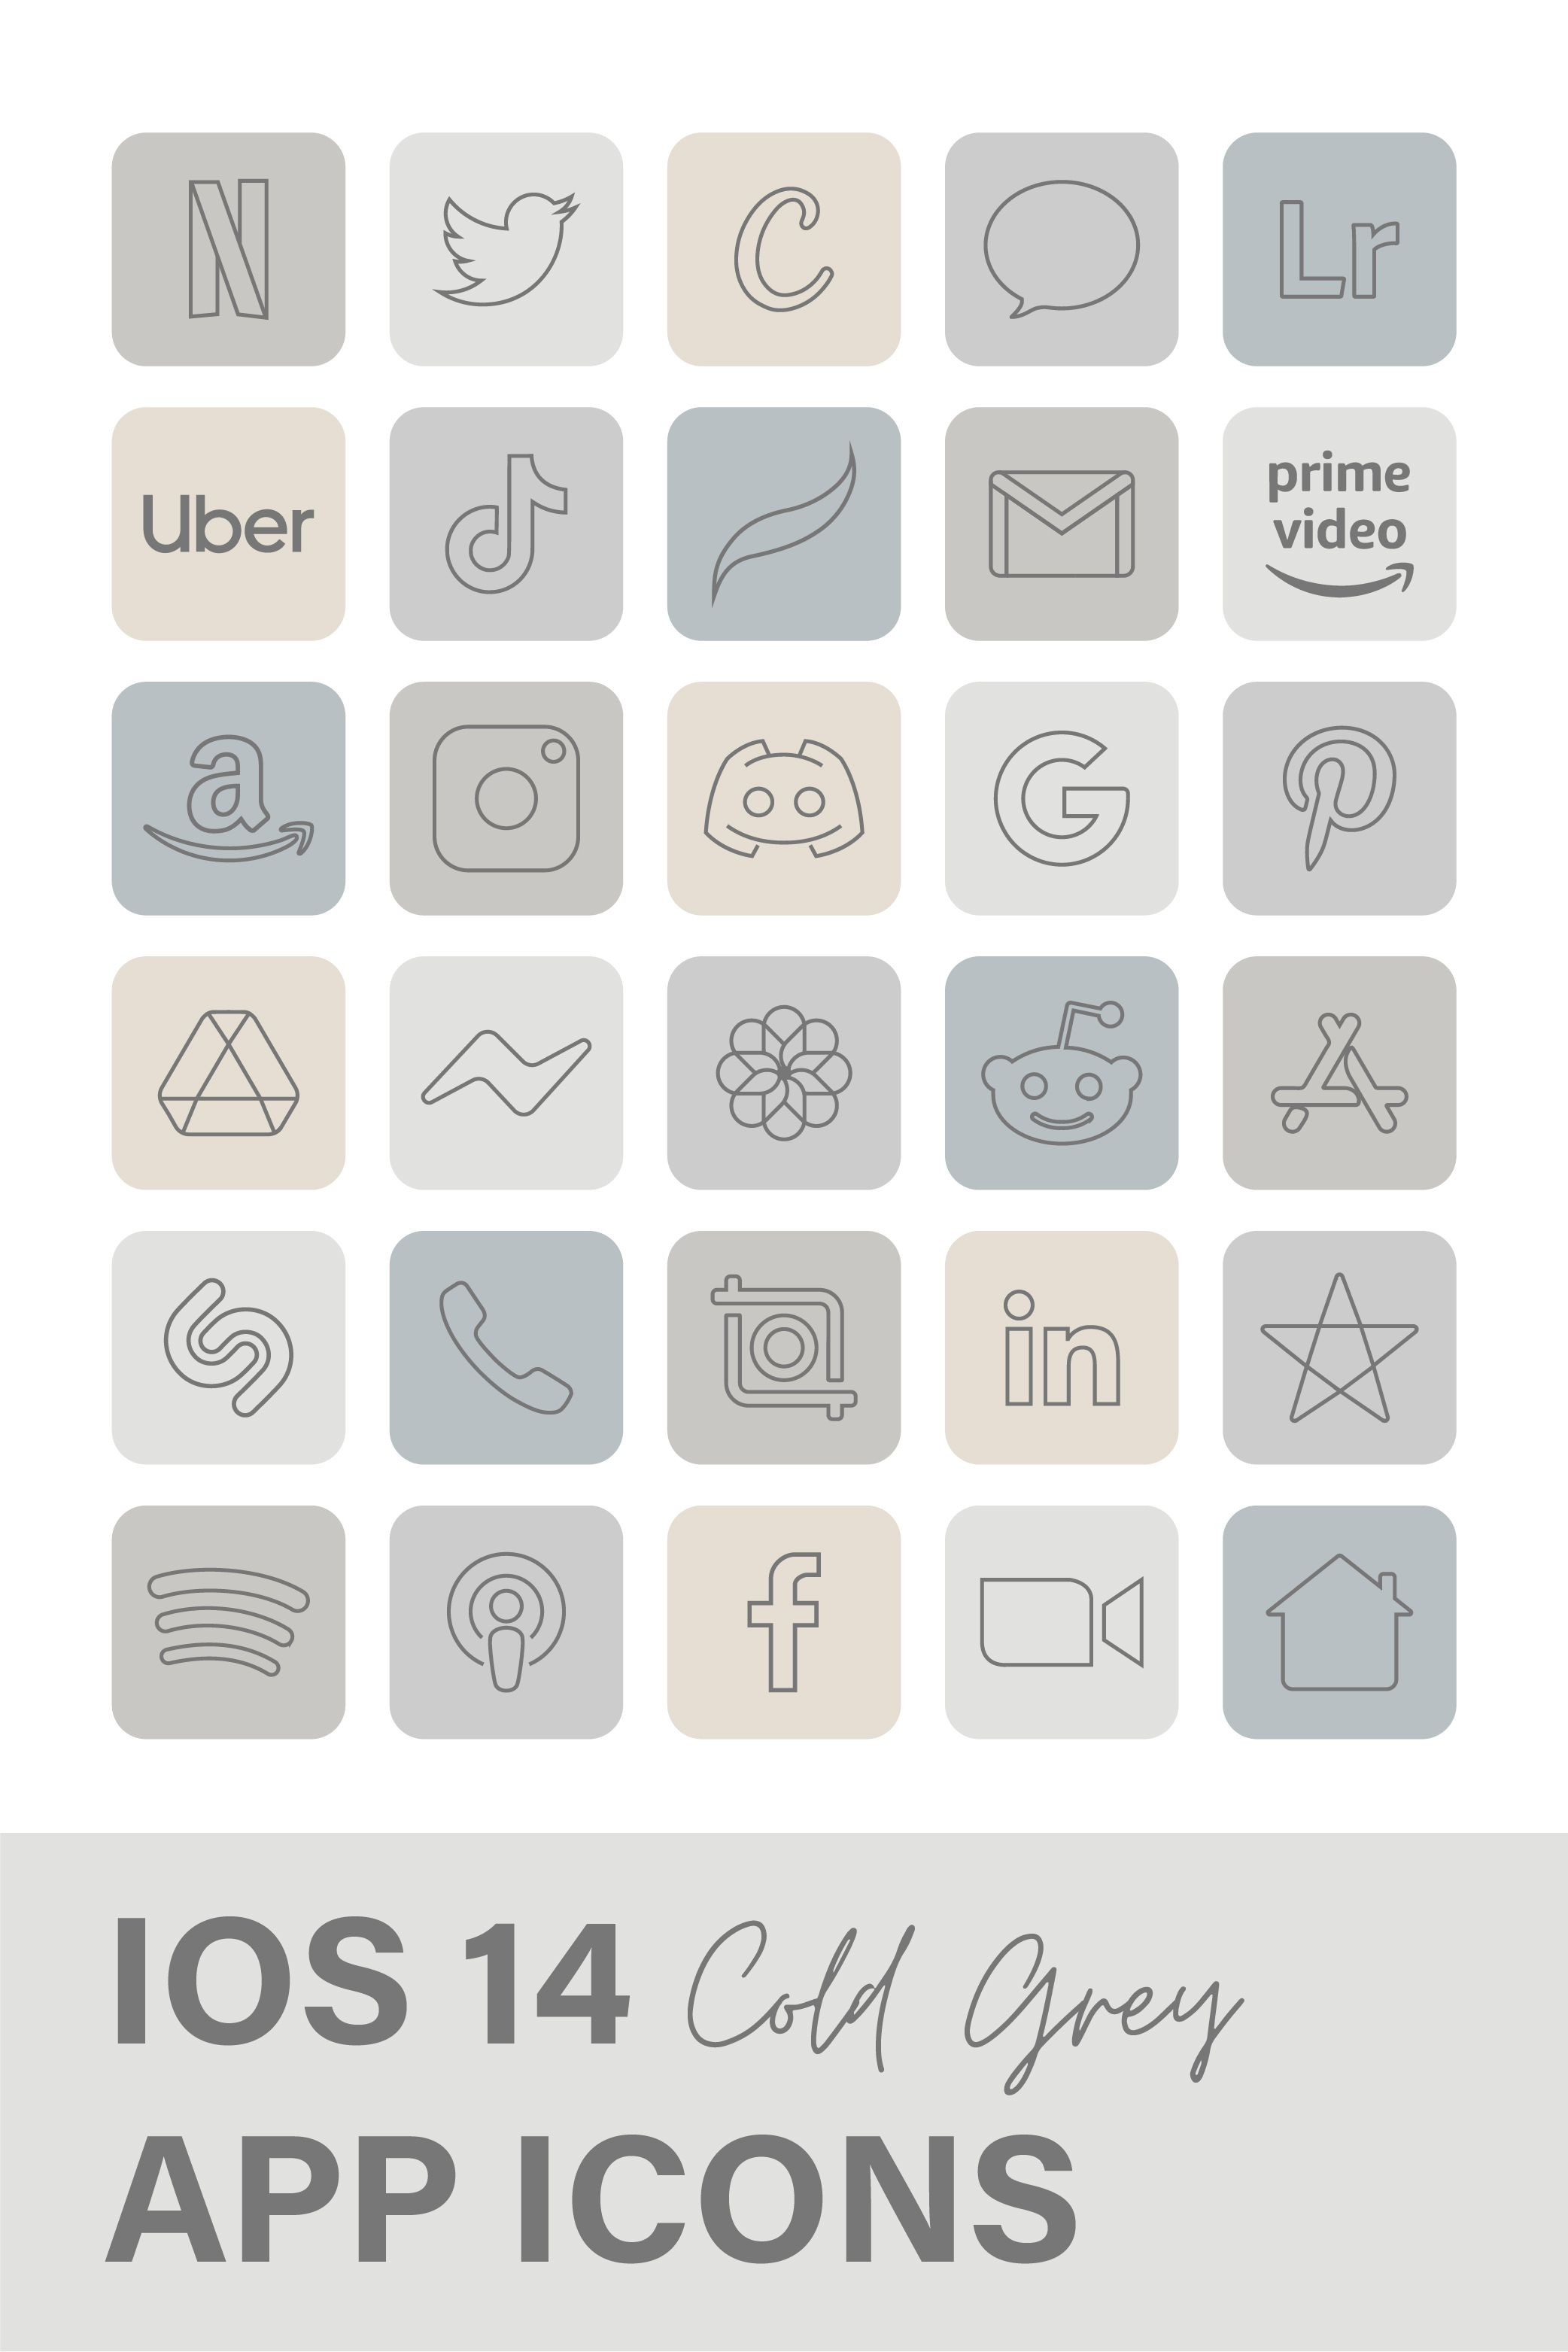 OS 14 App Icon | Pastel Cold Grey Aesthetic App Ic